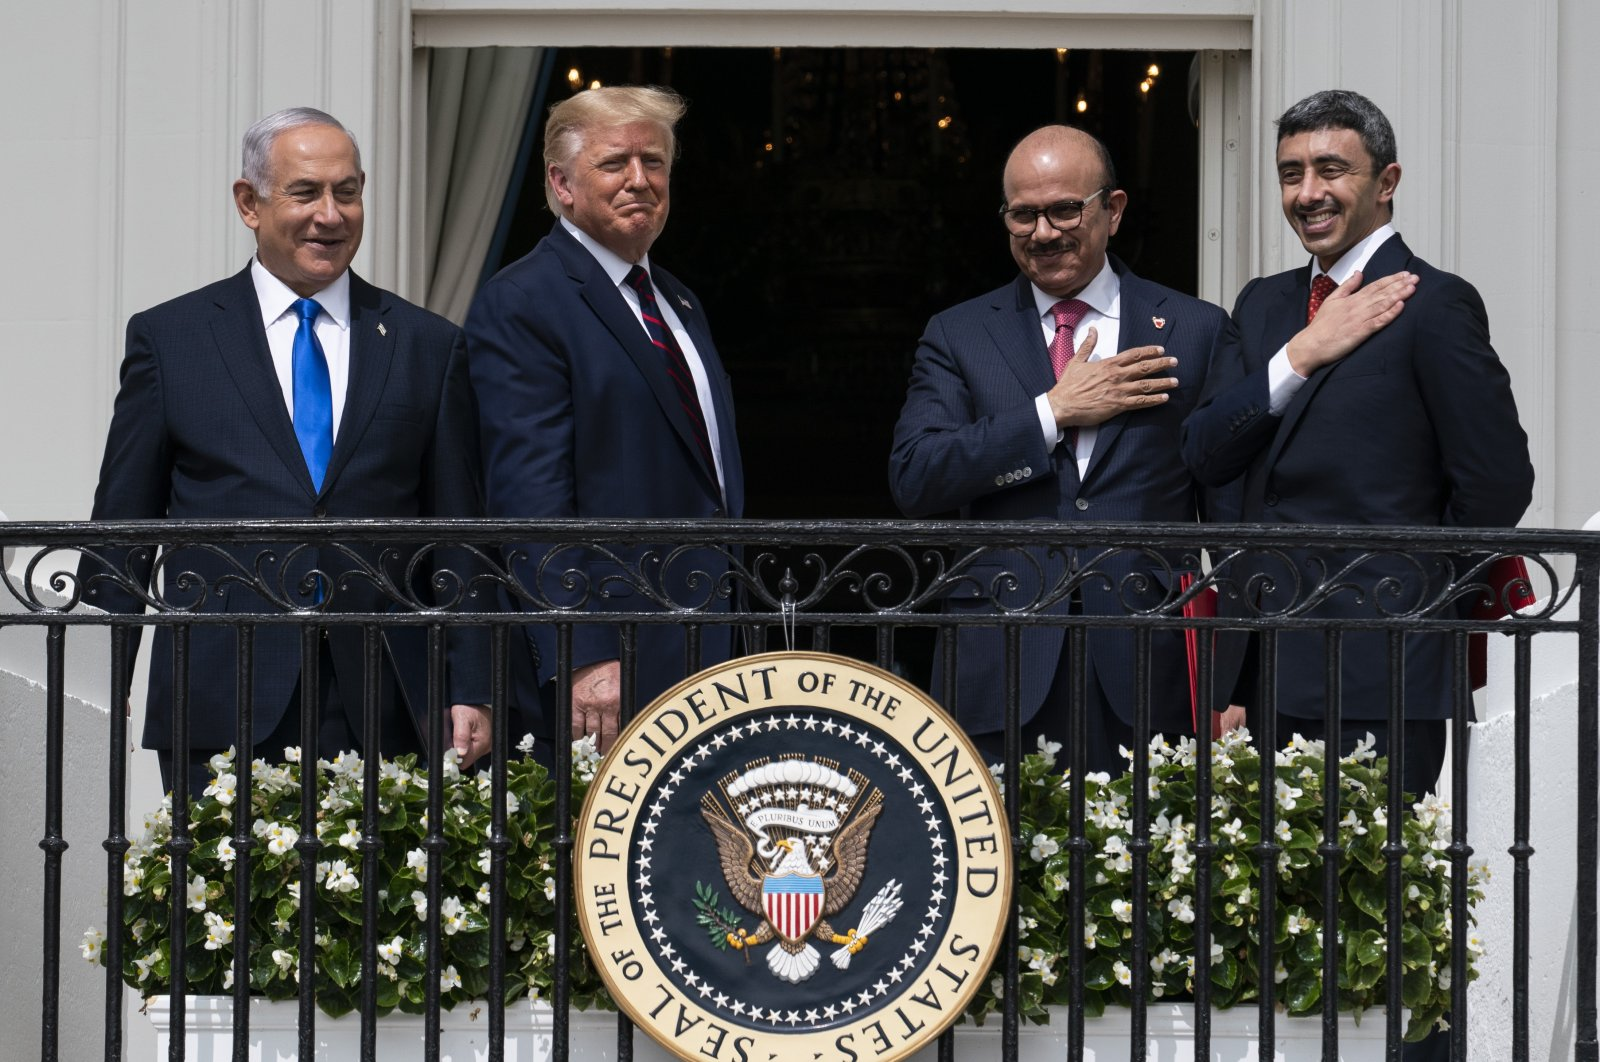 (L to R) Israeli Prime Minister Benjamin Netanyahu, U.S. President Donald Trump, Bahrain's Foreign Minister Khalid bin Ahmed al-Khalifa and United Arab Emirates' Foreign Minister Abdullah bin Zayed al-Nahyan react on the Blue Room Balcony after signing the Abraham Accords during a ceremony on the South Lawn of the White House in Washington, D.C., U.S., Sept. 15, 2020. (AP Photo)